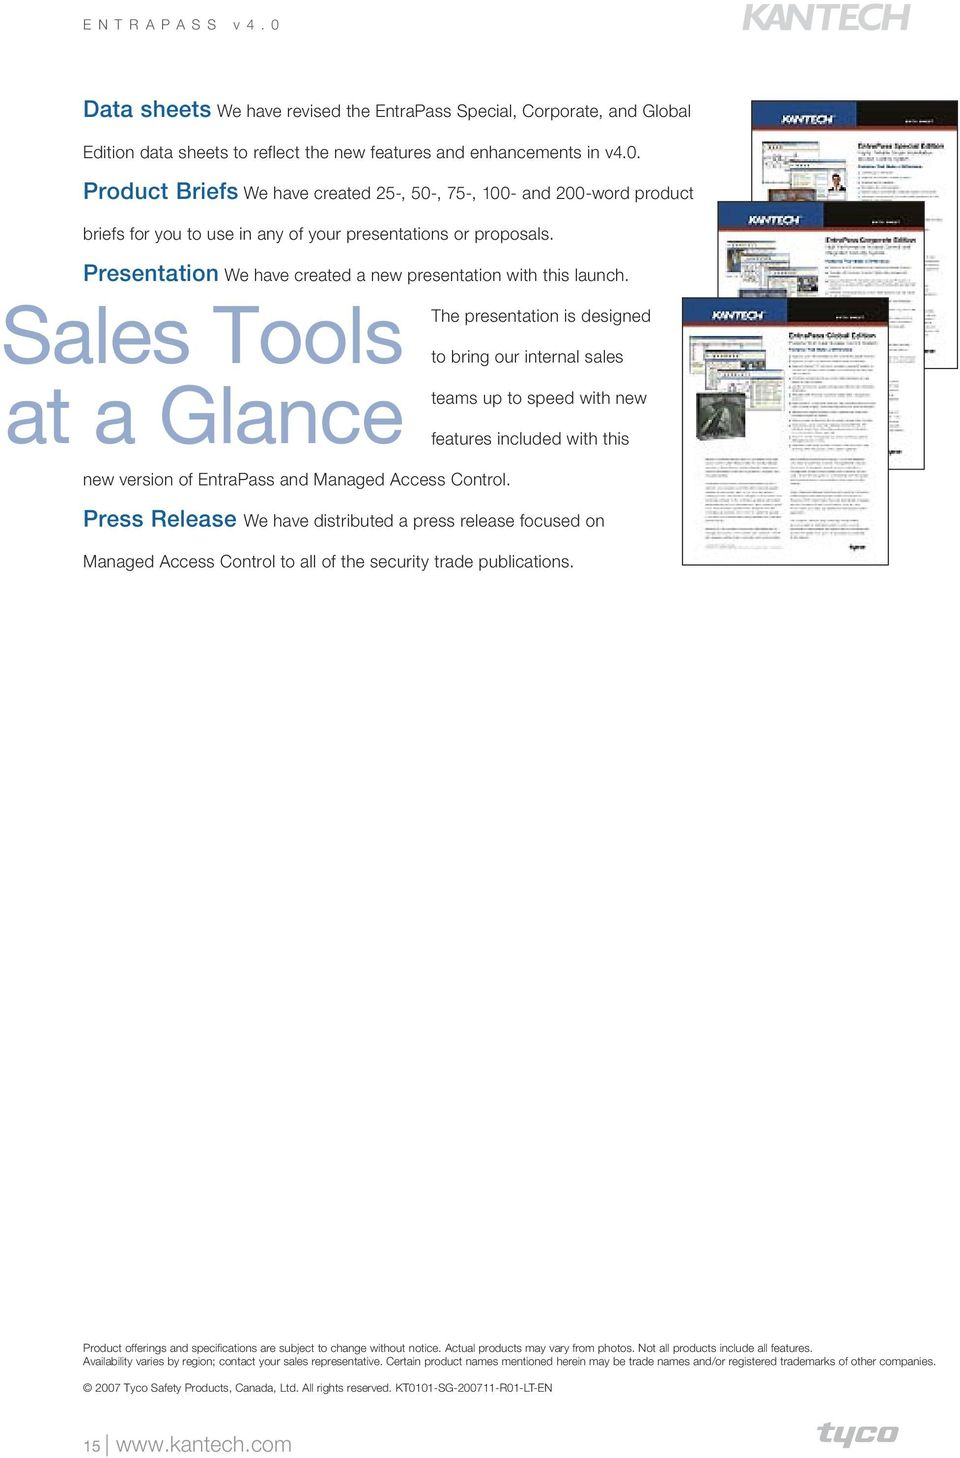 Presentation We have created a new presentation with this launch. Sales Tools at a Glance new version of EntraPass and Managed Access Control.